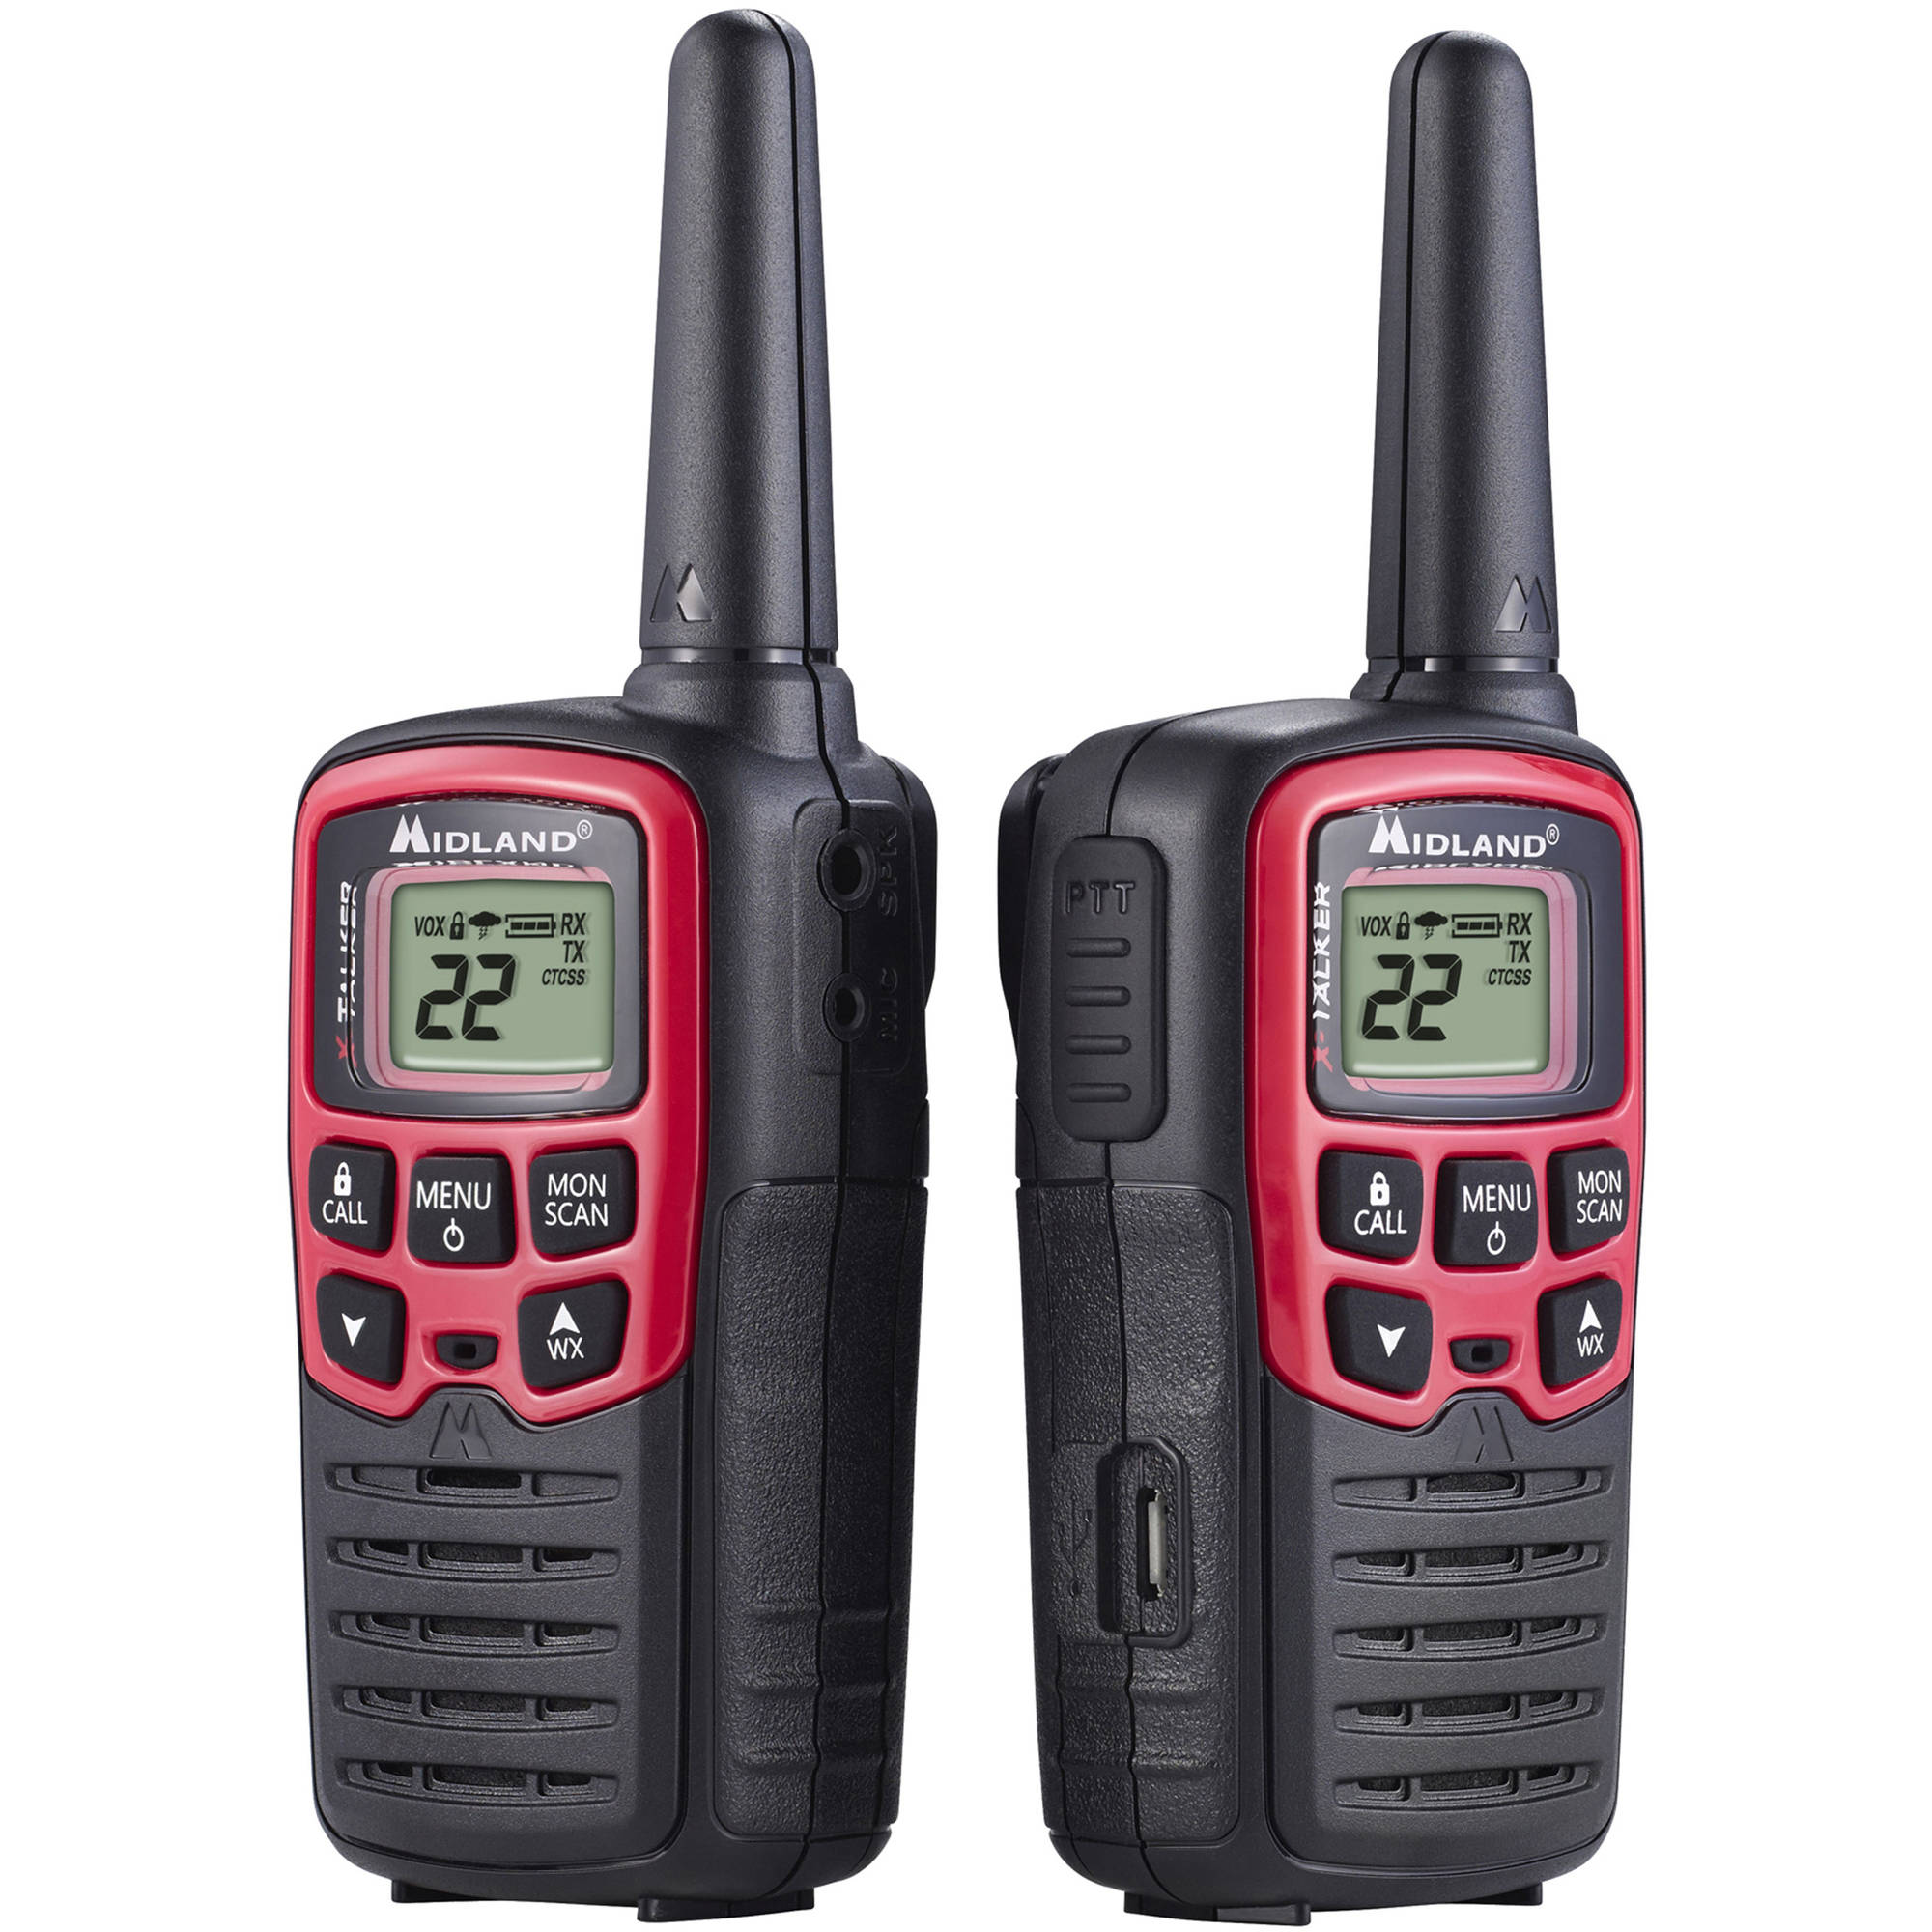 Midland T31VP Walkie Talkies